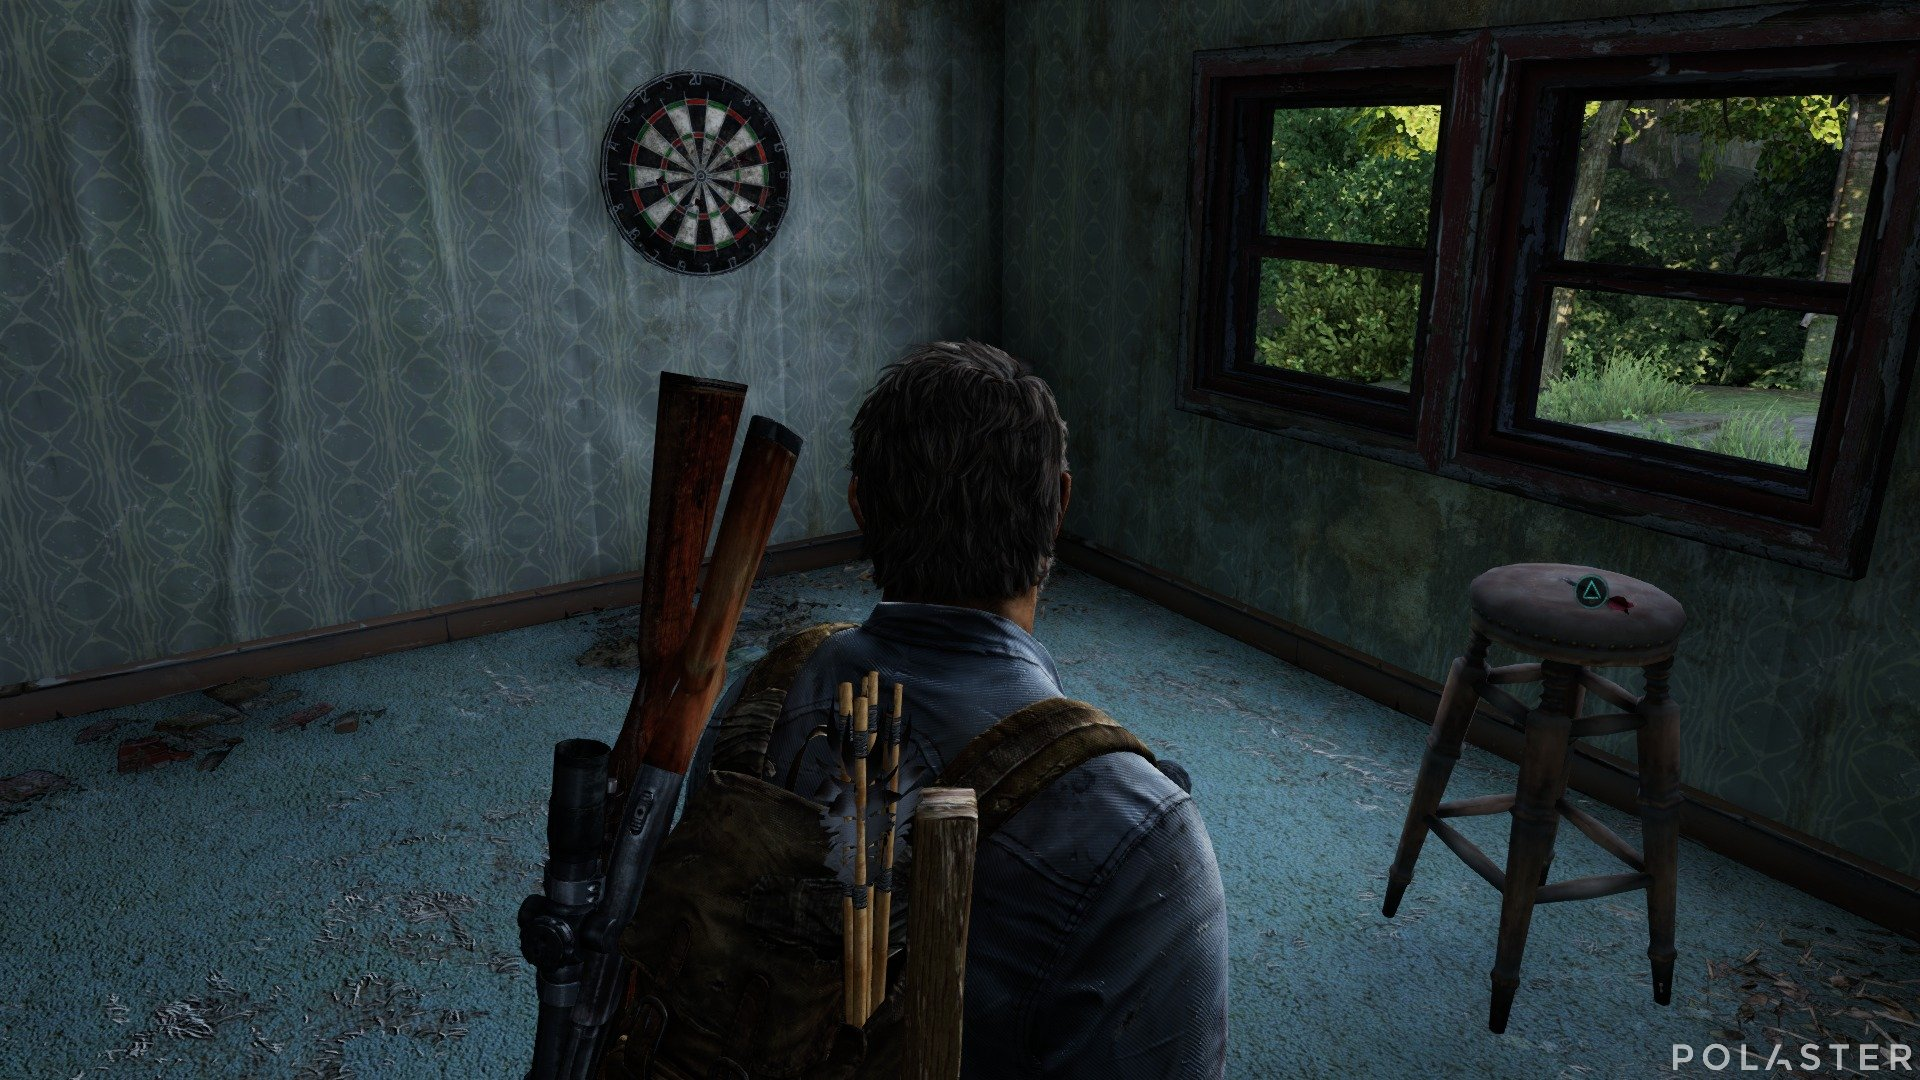 The Last of Us Conversación opcional